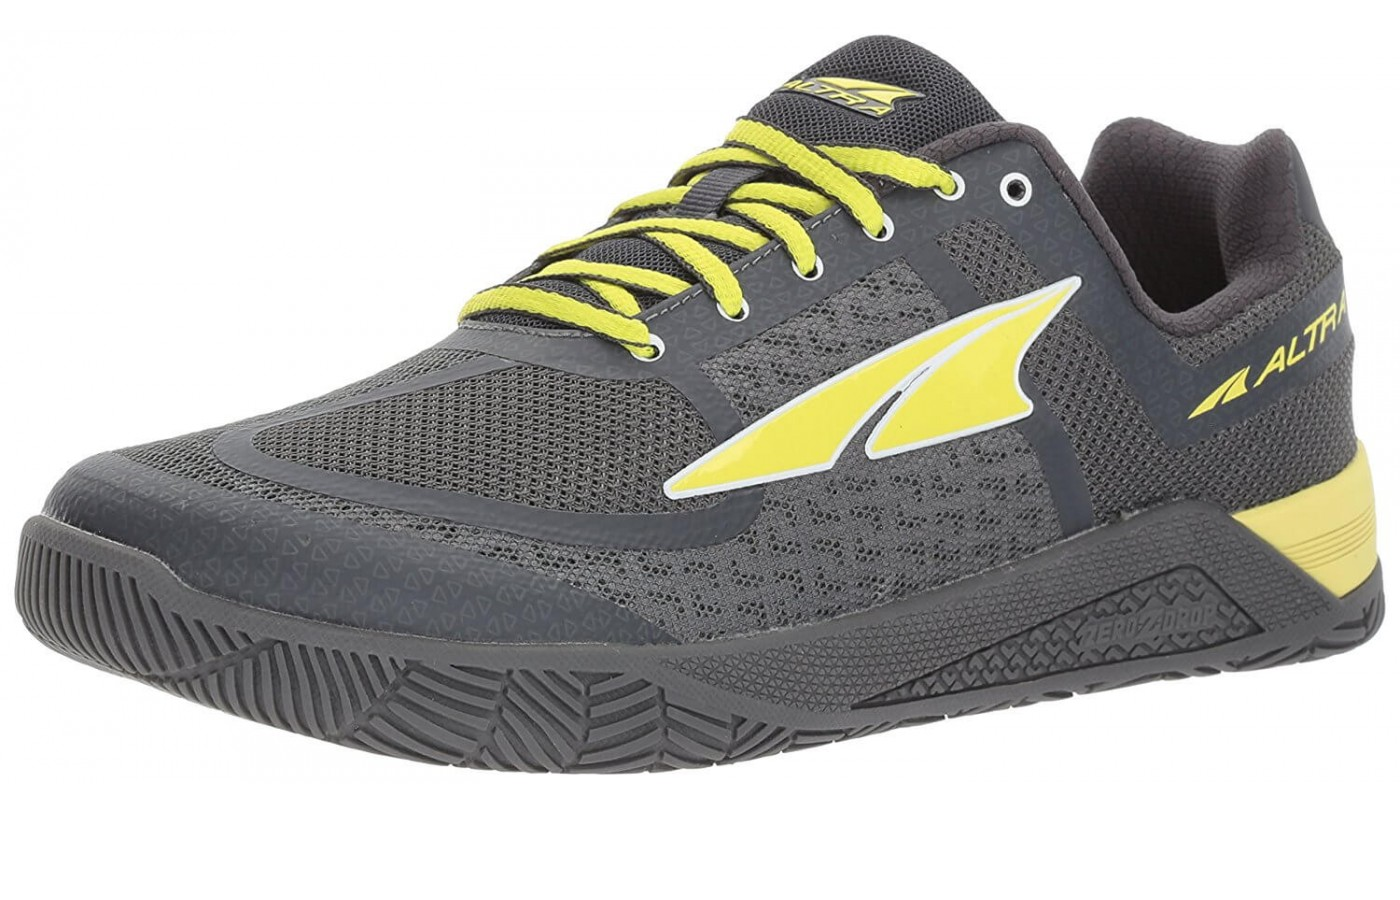 The Altra HIIT XT features an Air Mesh upper